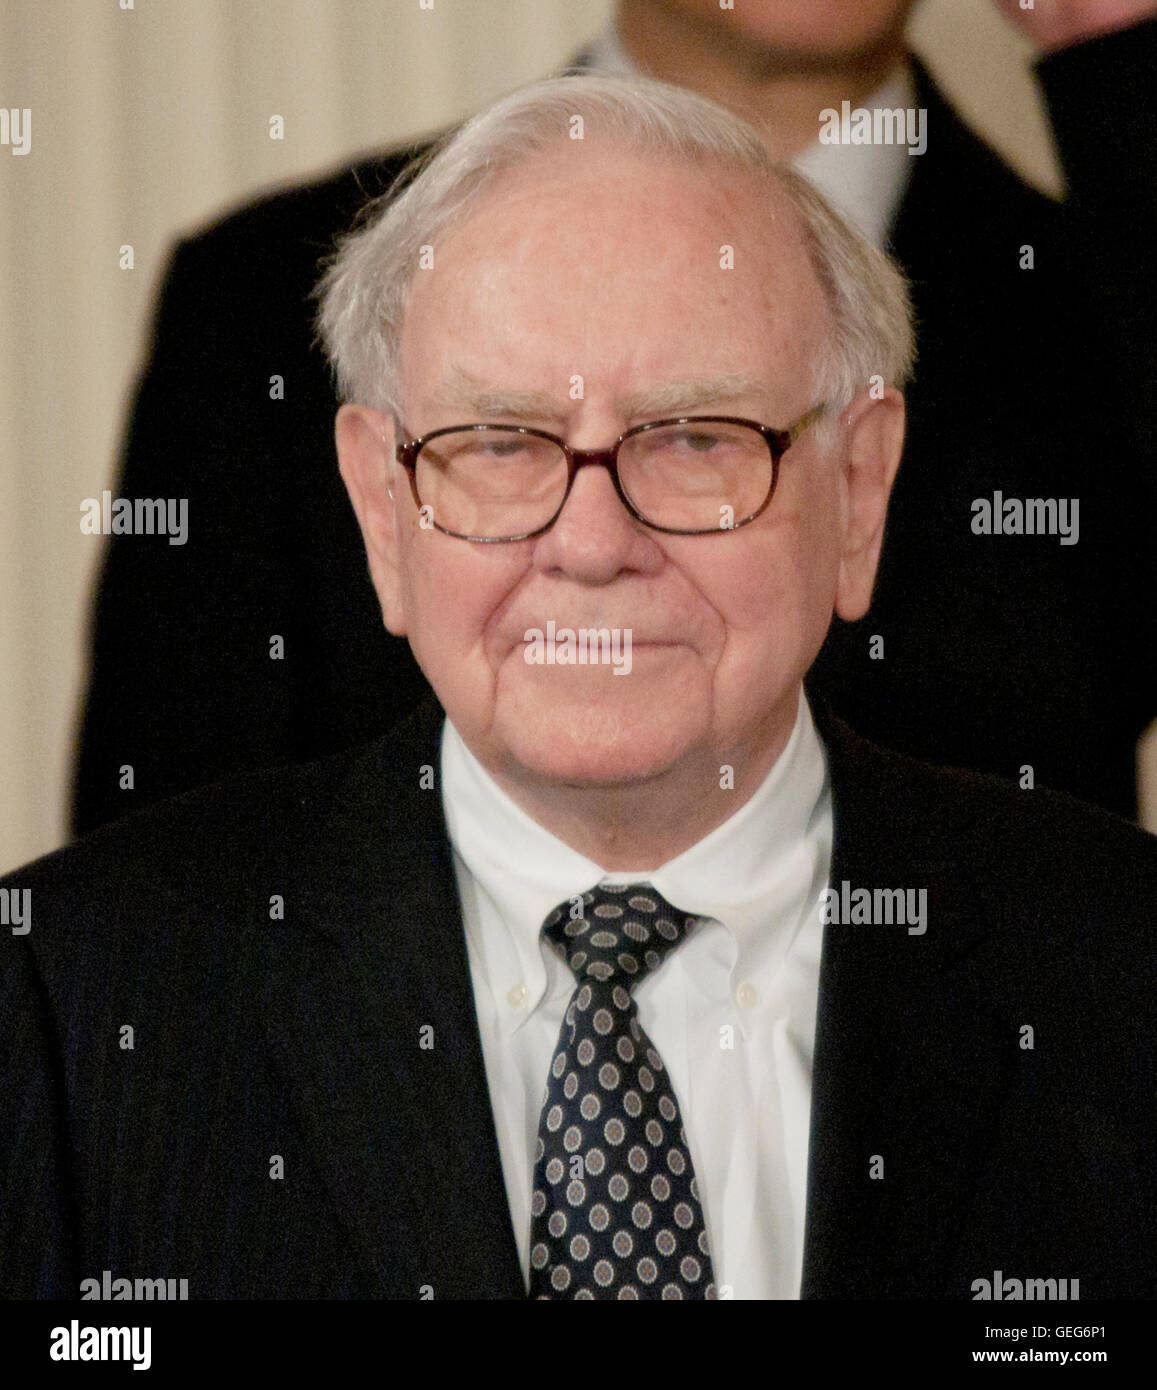 Warren Buffett talks to reporters at the White House after receiving the 2011 Medal of Freedom. Buffett was awarded - Stock Image